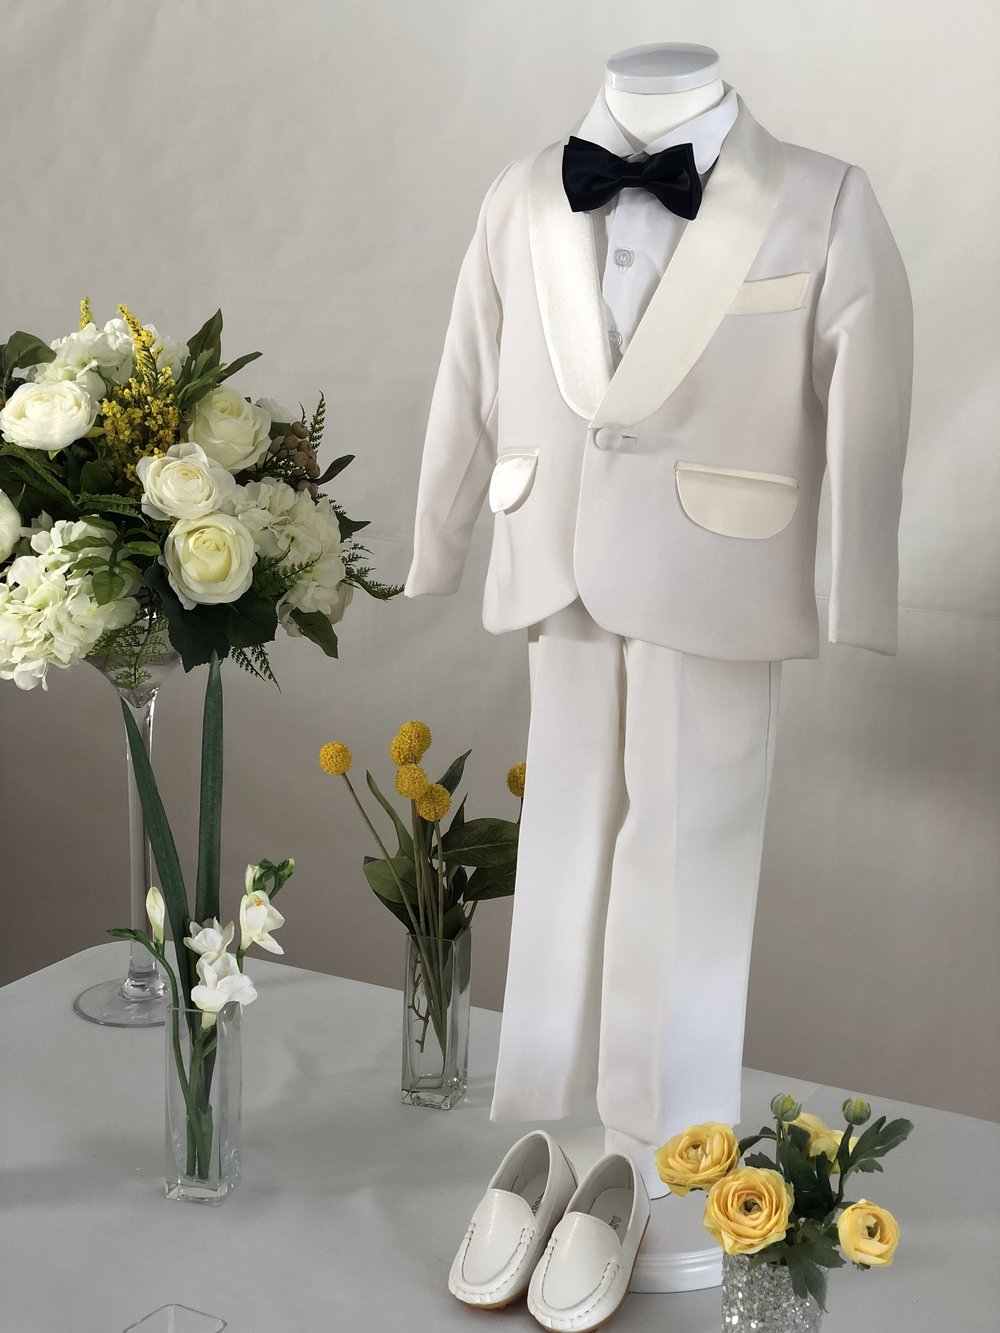 suit rental - All suits comes with a shirt, shoes (size 5), bow tie.모든 수트는 셔츠,신발 (사이즈 5), 나비 넥타이 보내드립니다.